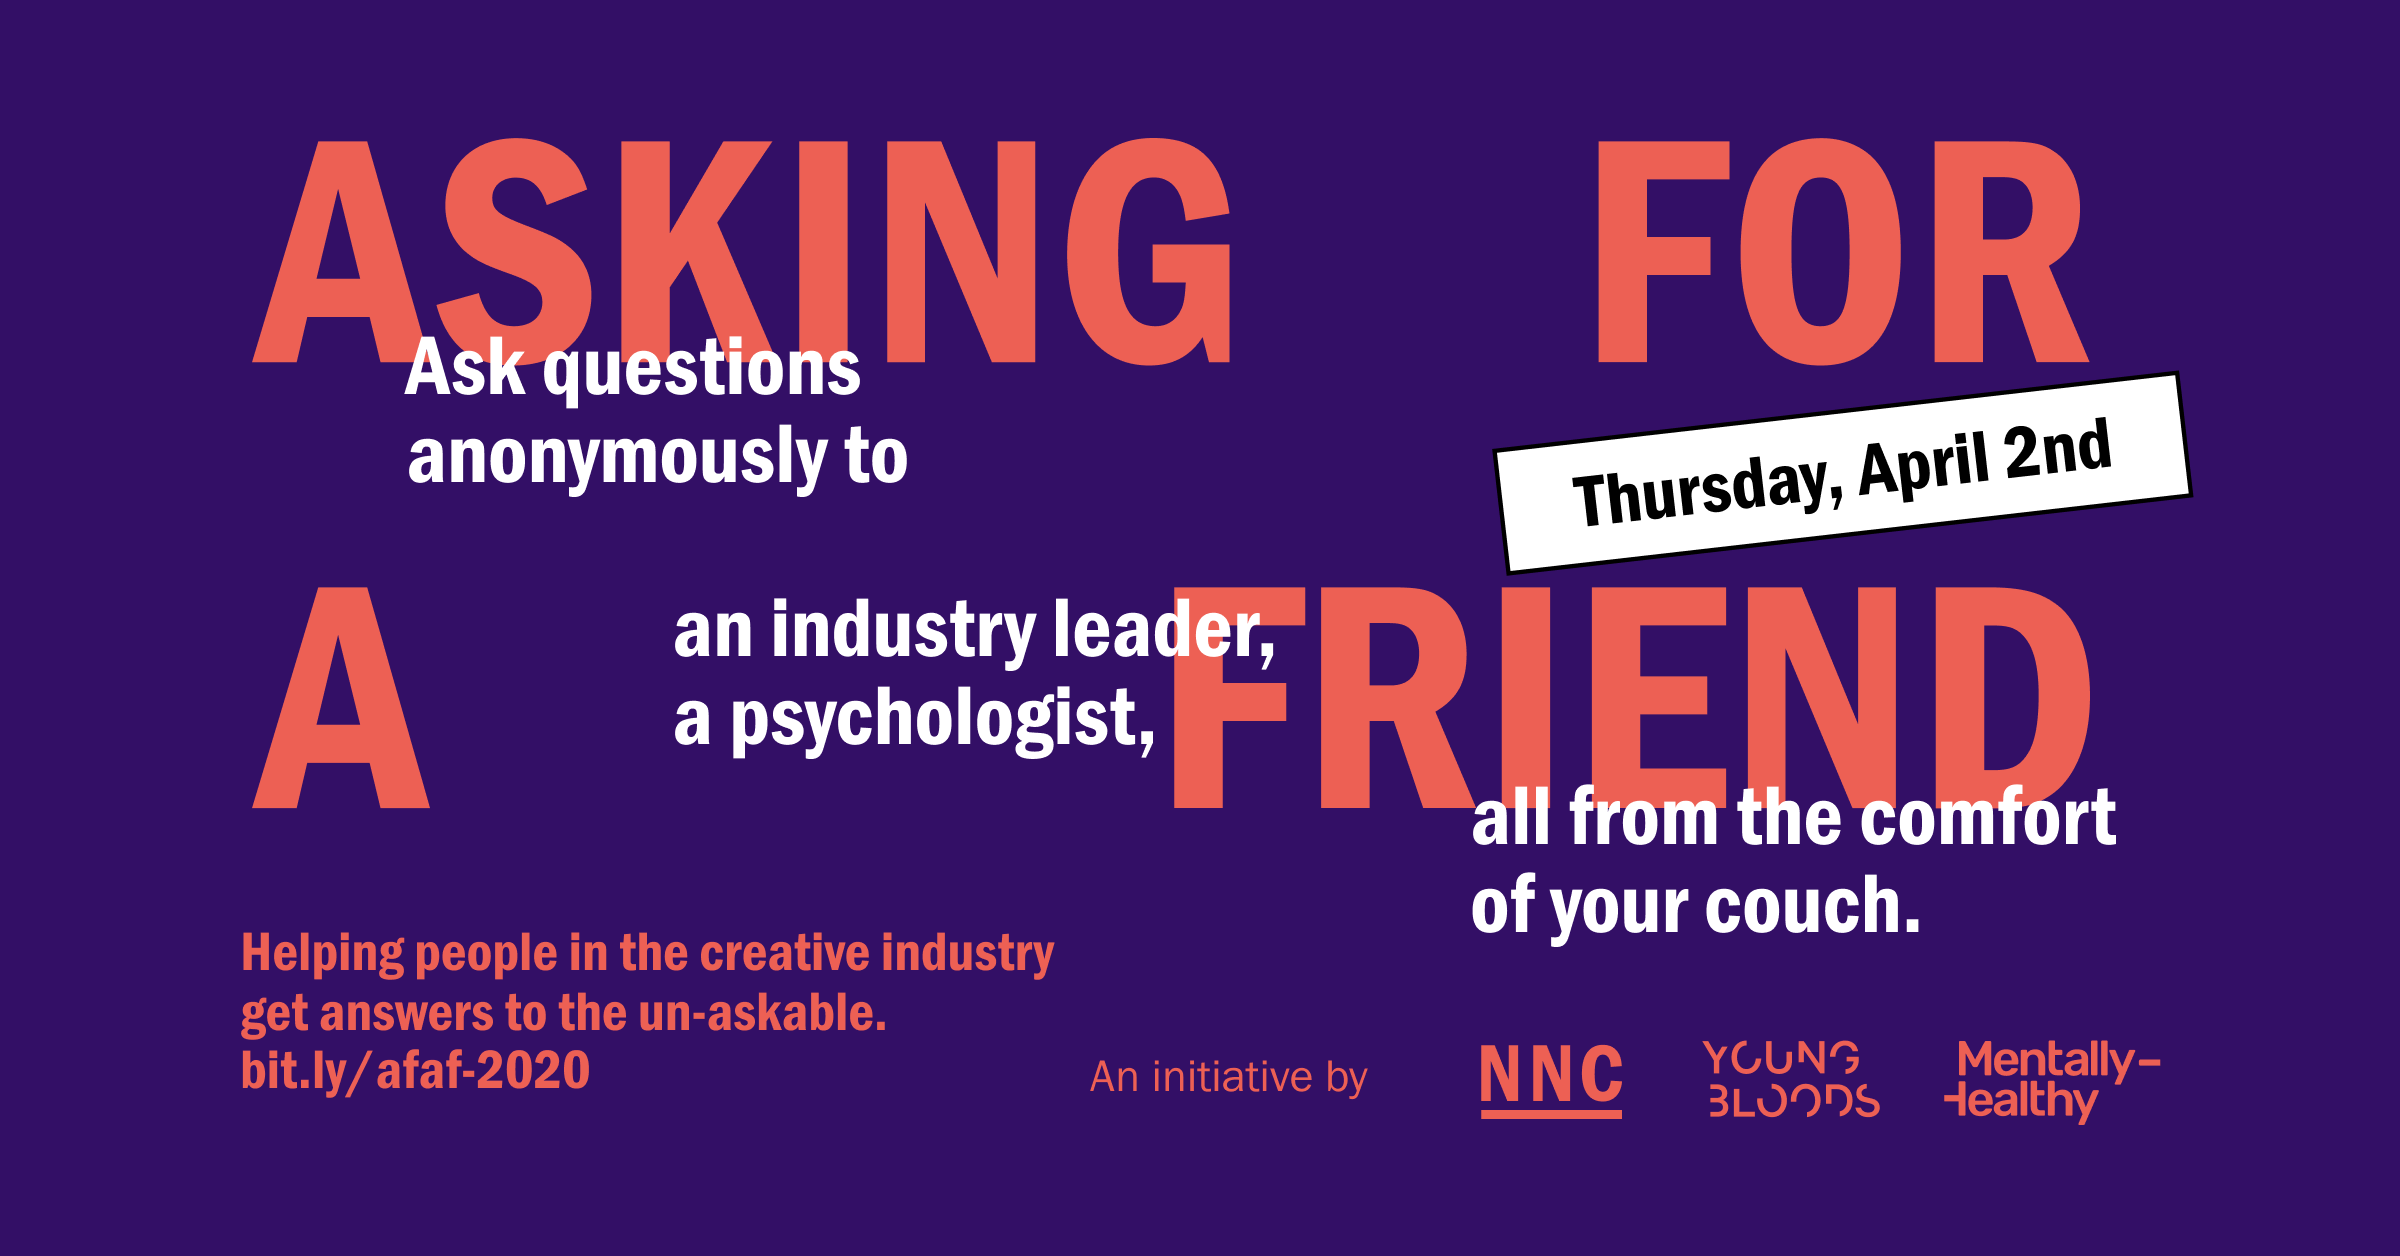 'Asking For A Friend' initiative launches to help the industry ask the unaskable ~ Thurs, April 2